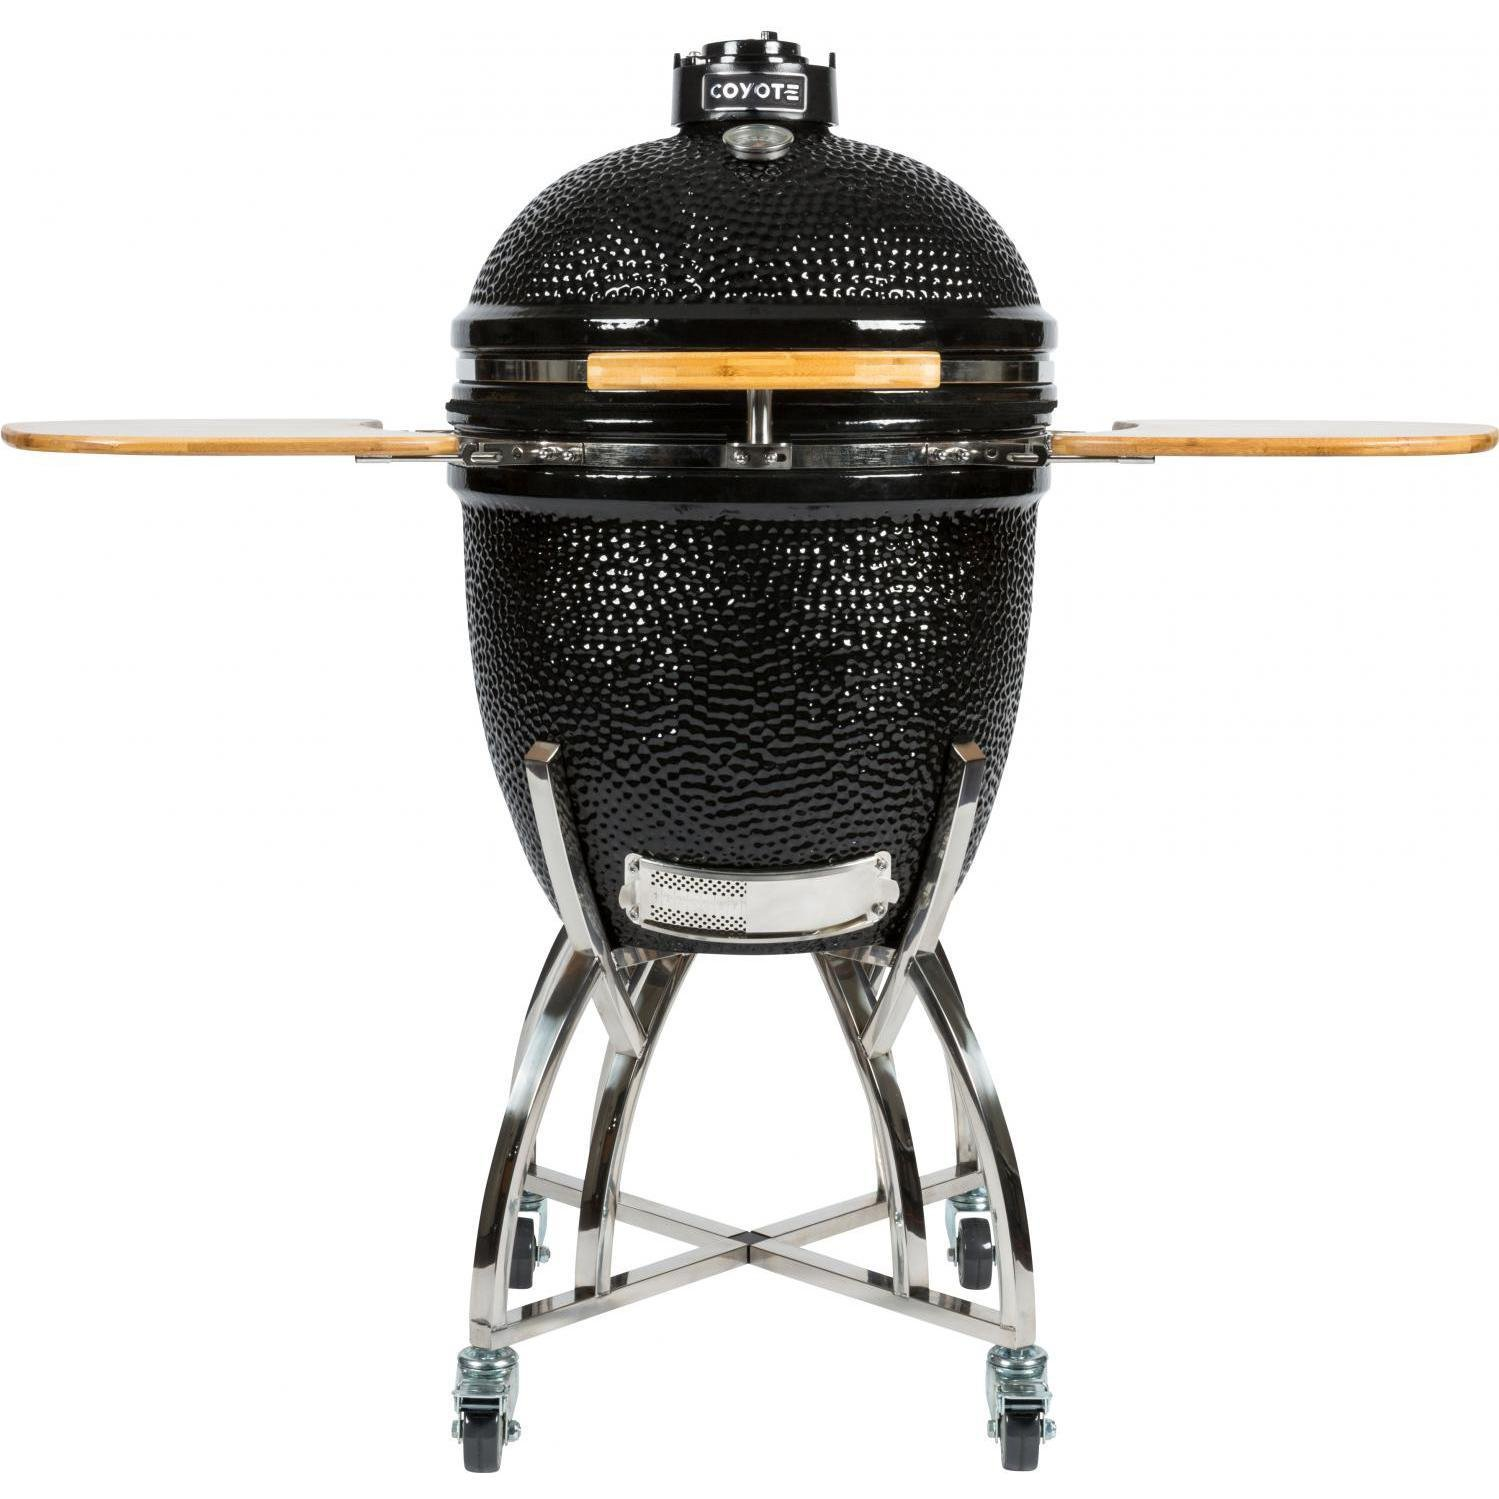 Coyote Black Stainless Steel Asado Ceramic Grill